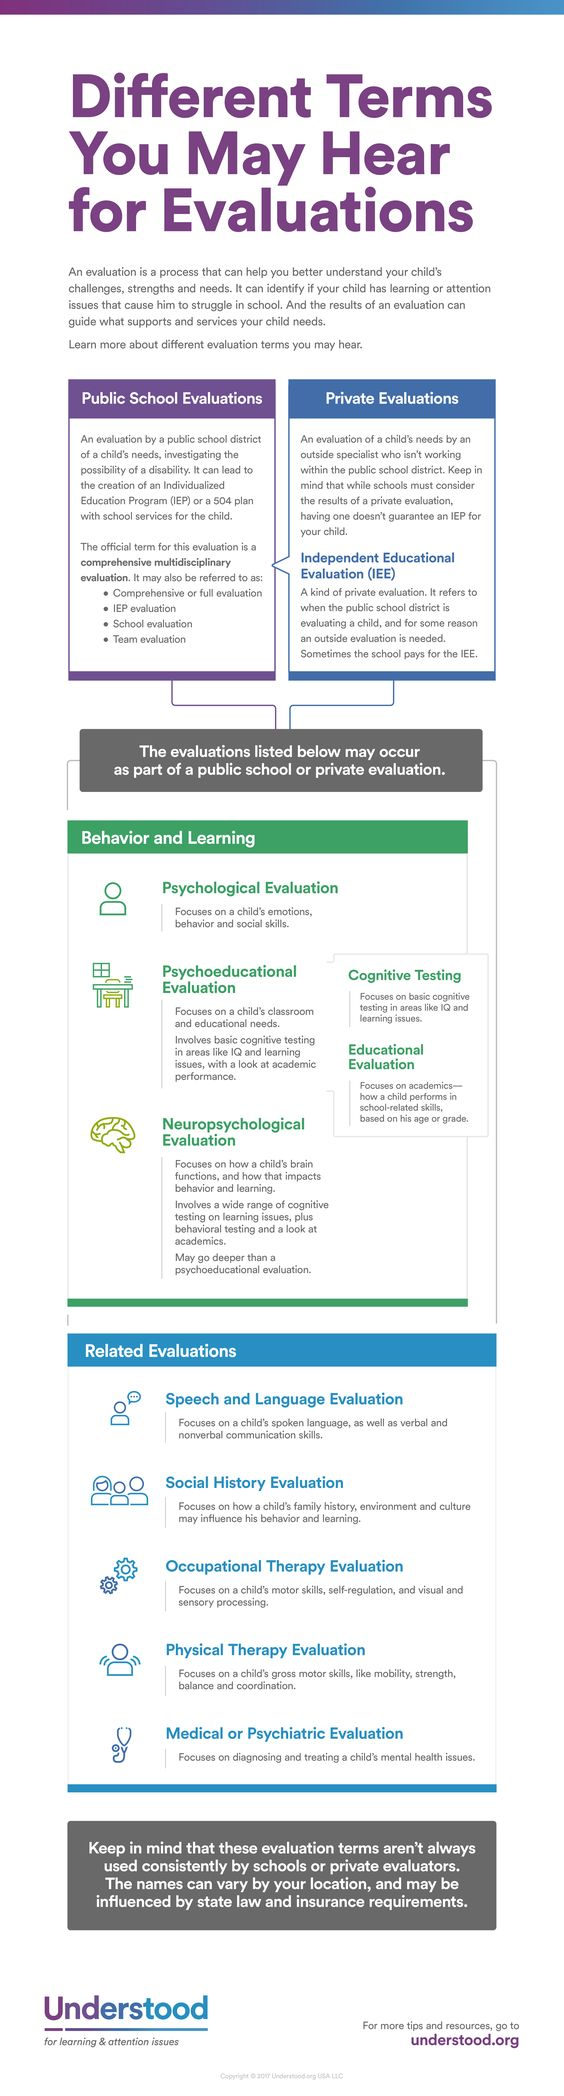 Different Terms You May Hear for Evaluations Special